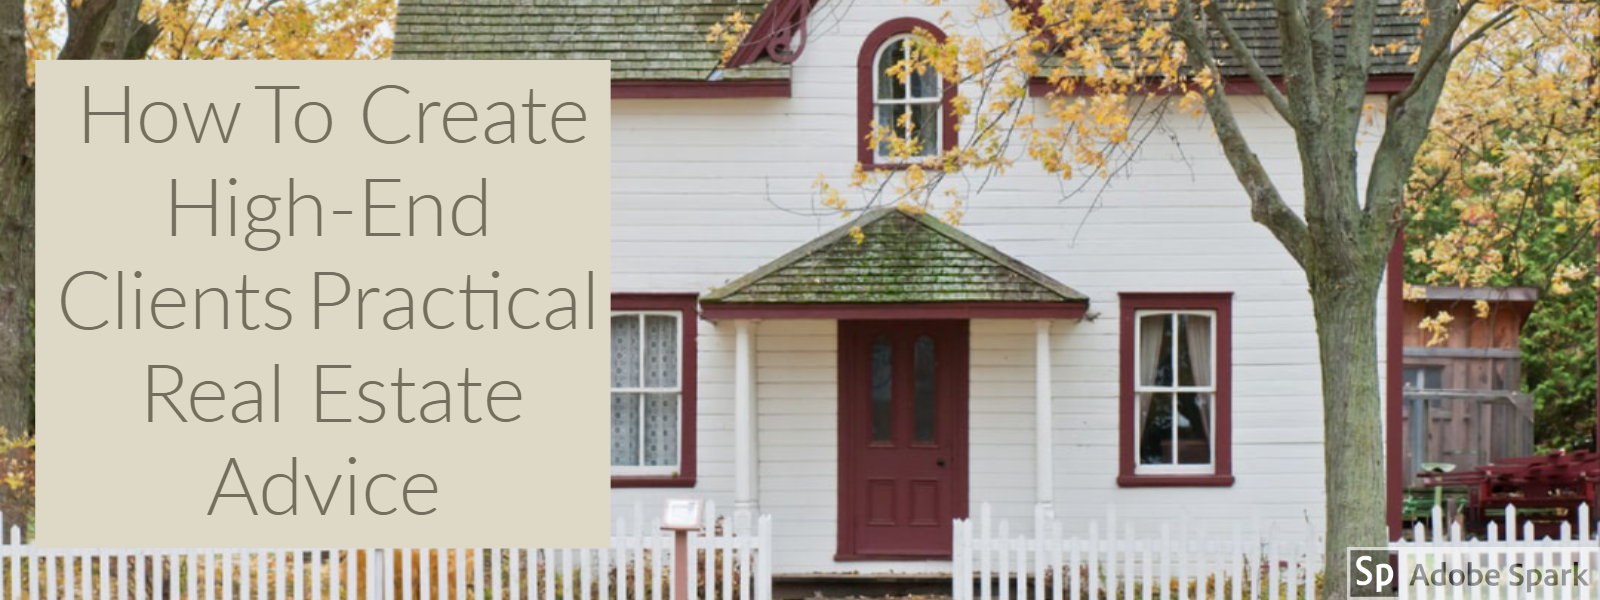 How To Create High-End Clients Practical Real Estate Advice